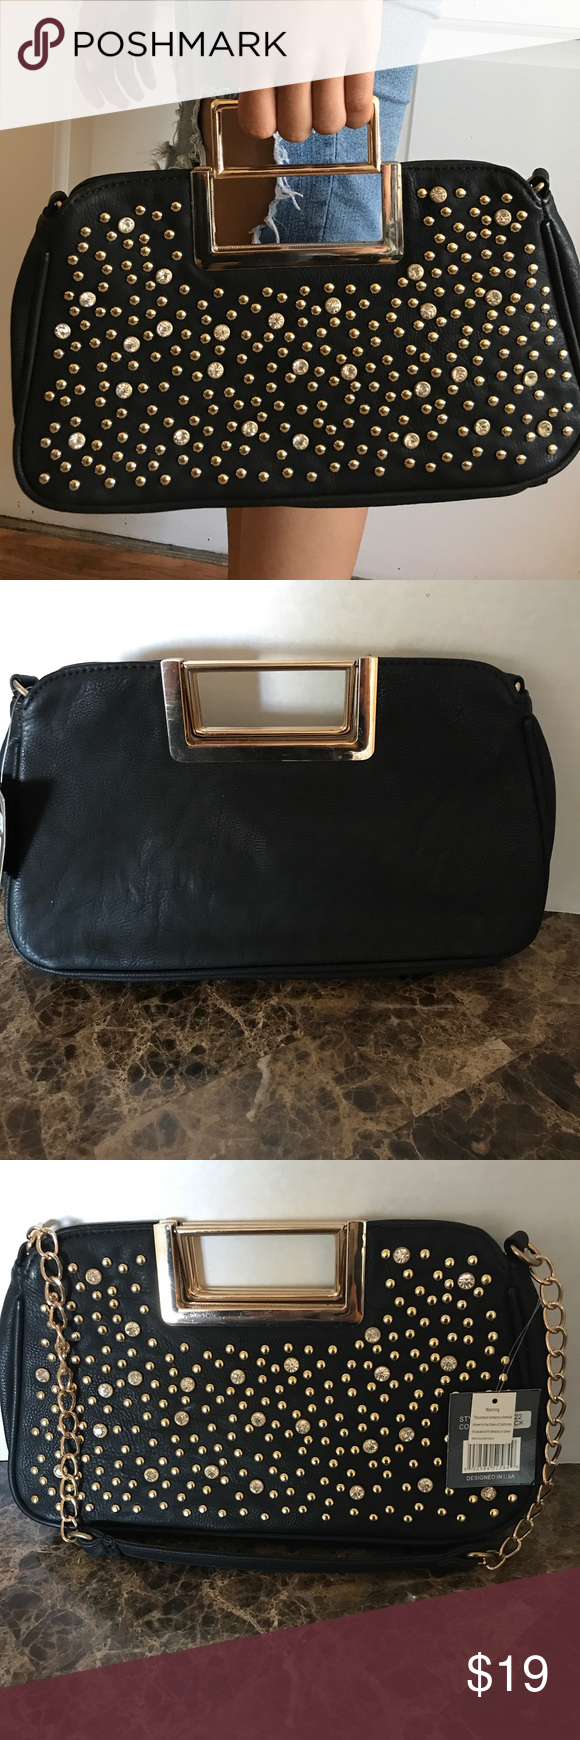 Uncategorized Leather Like Material black clutch with gold accents boutique studs this fancy is a leather like material handles that fold in when not being